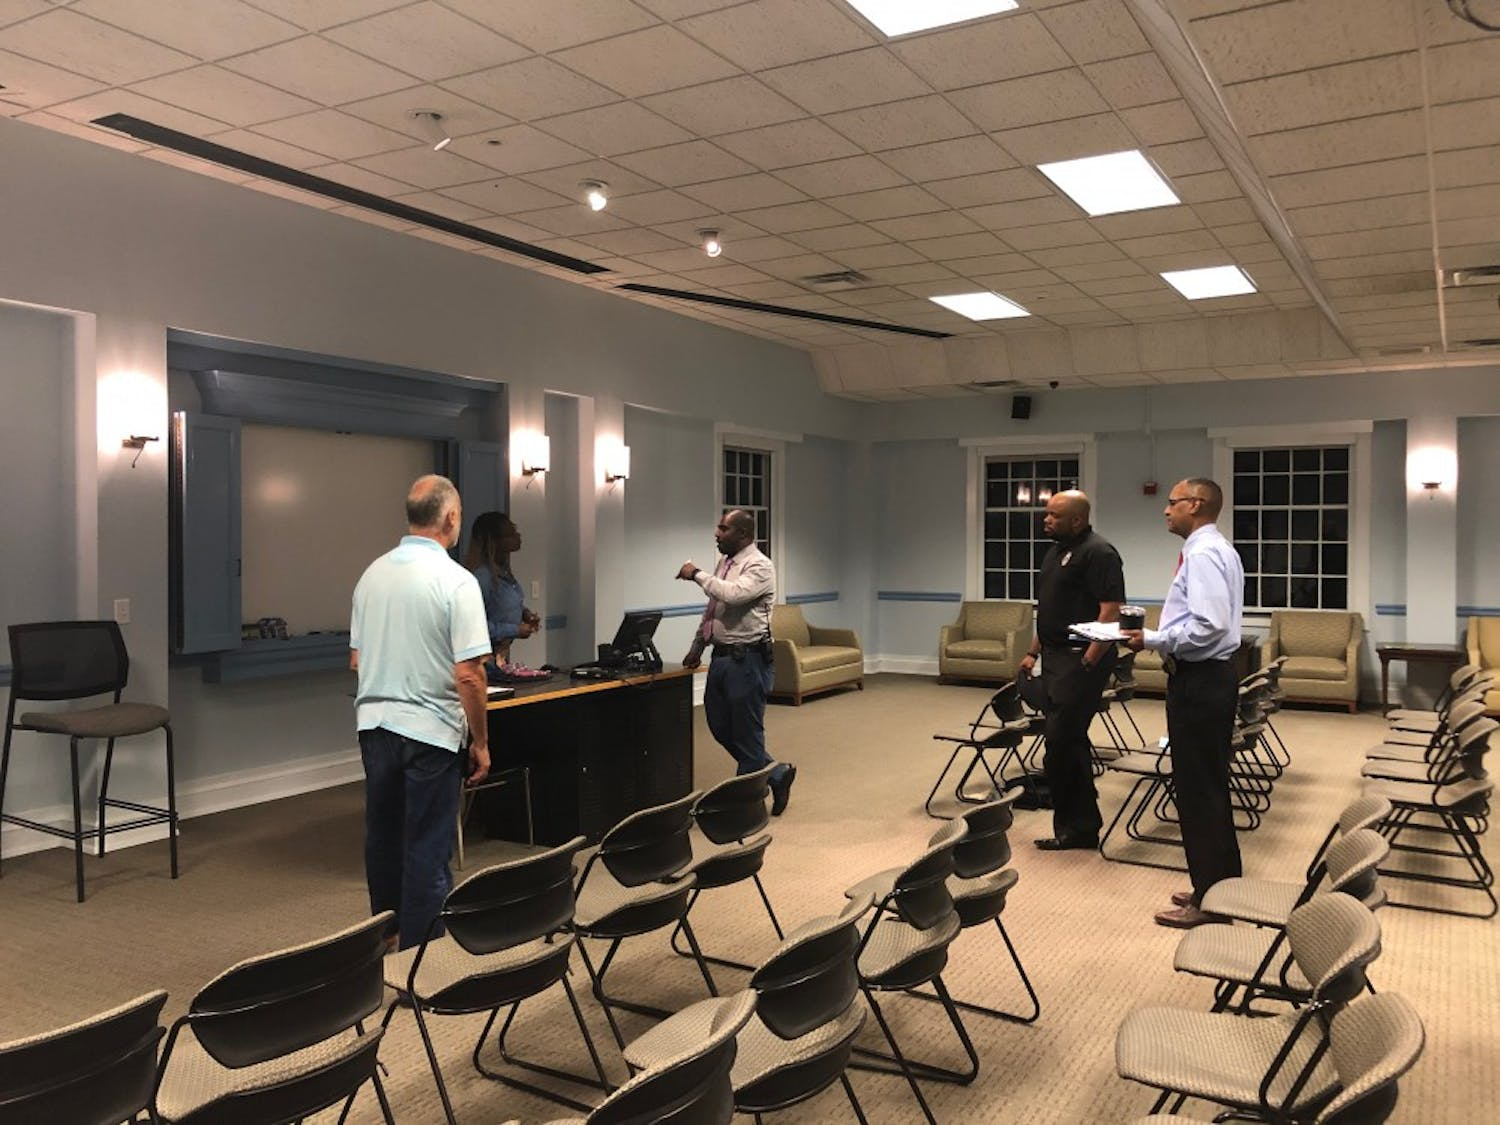 At a sparsely-attended listening session on Monday, Sept. 30, 2019, officers and Campus Safety Commission members discussed a lack of trust in the police following Silent Sam-related protests.